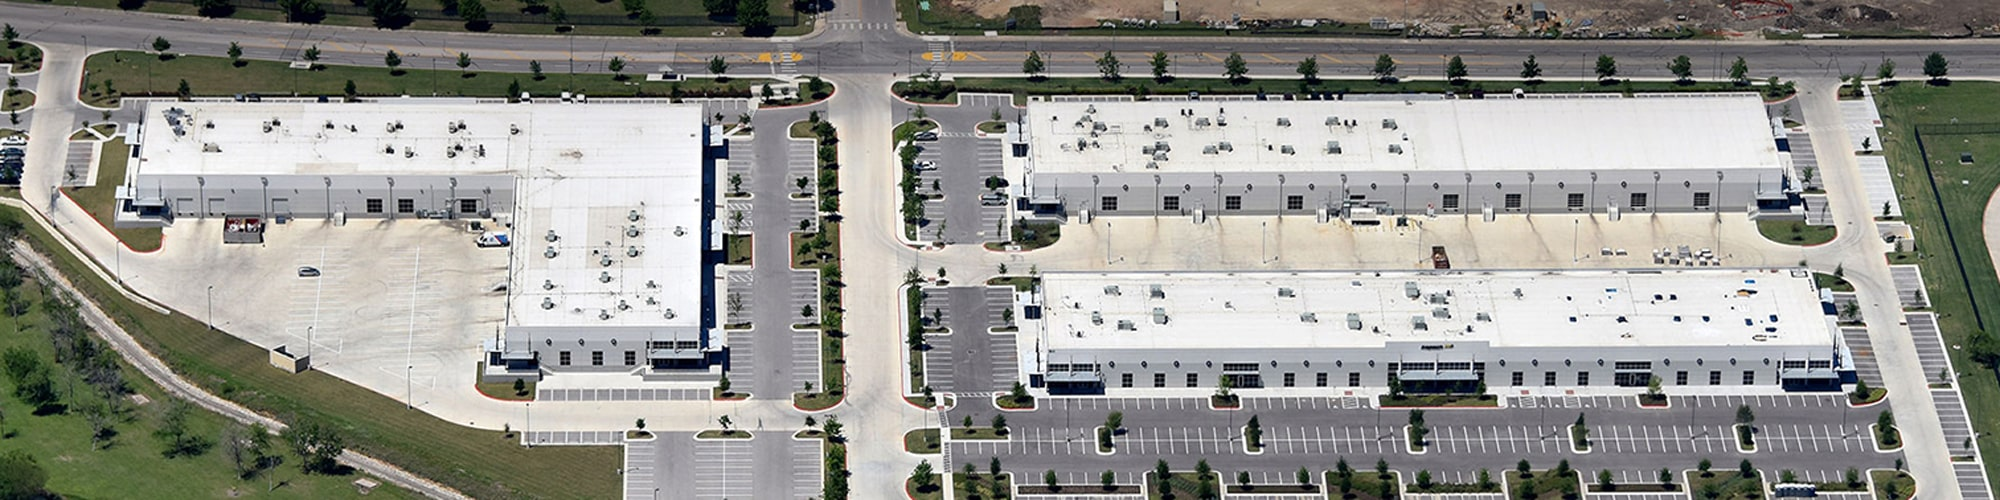 MetCenter II Aerial Image